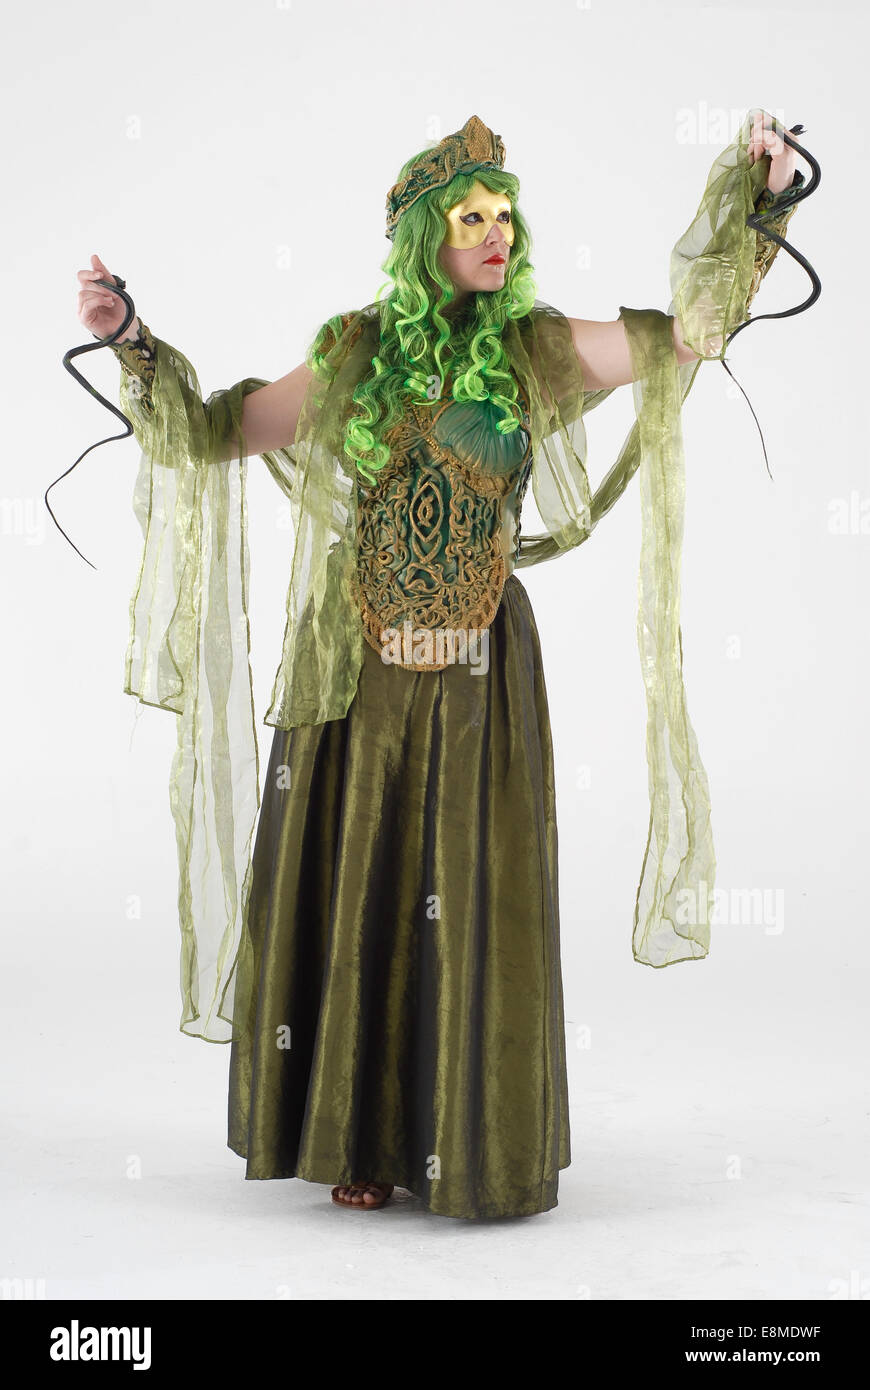 Woman in fancy dress comedy costume as Medusa mythological character, suitable for pantomime / play Stock Photo